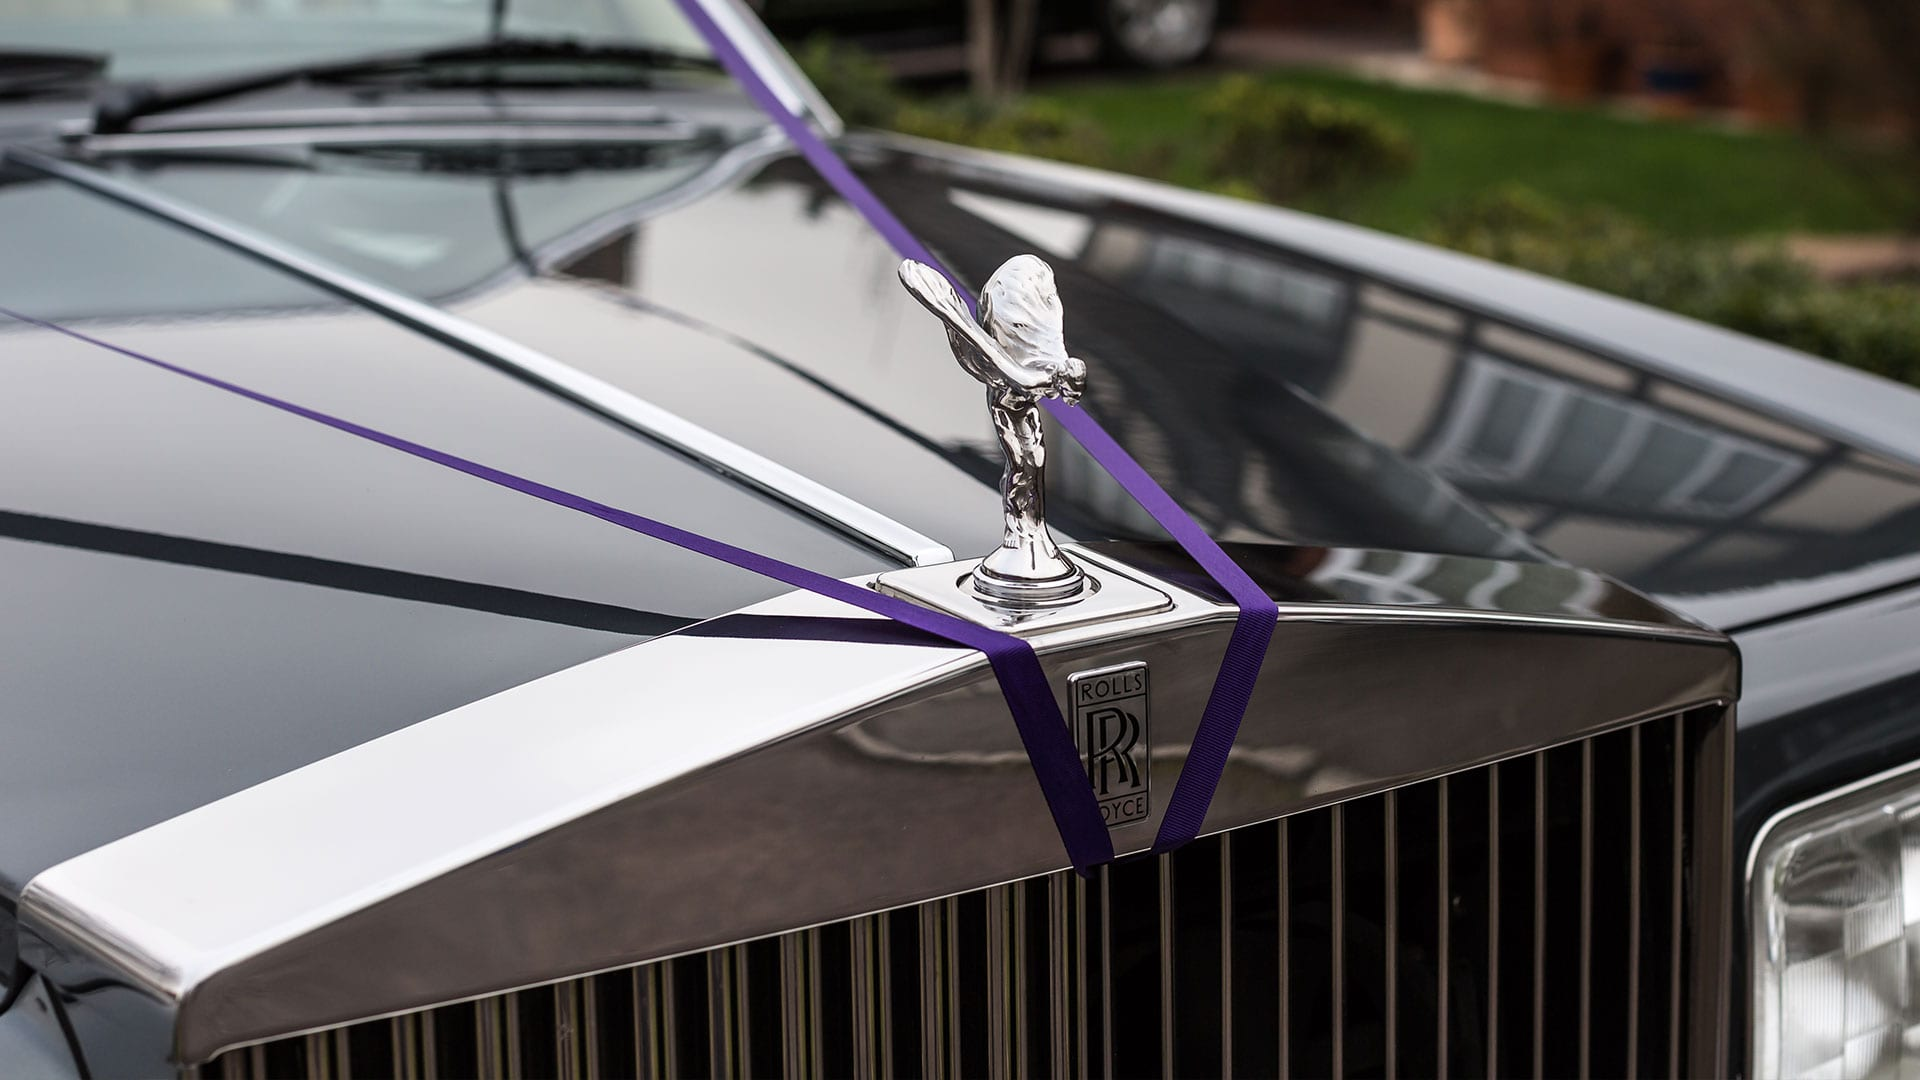 The Rolls-Royce Flying Spur wedding car Spirit of Ecstacy with ribbons